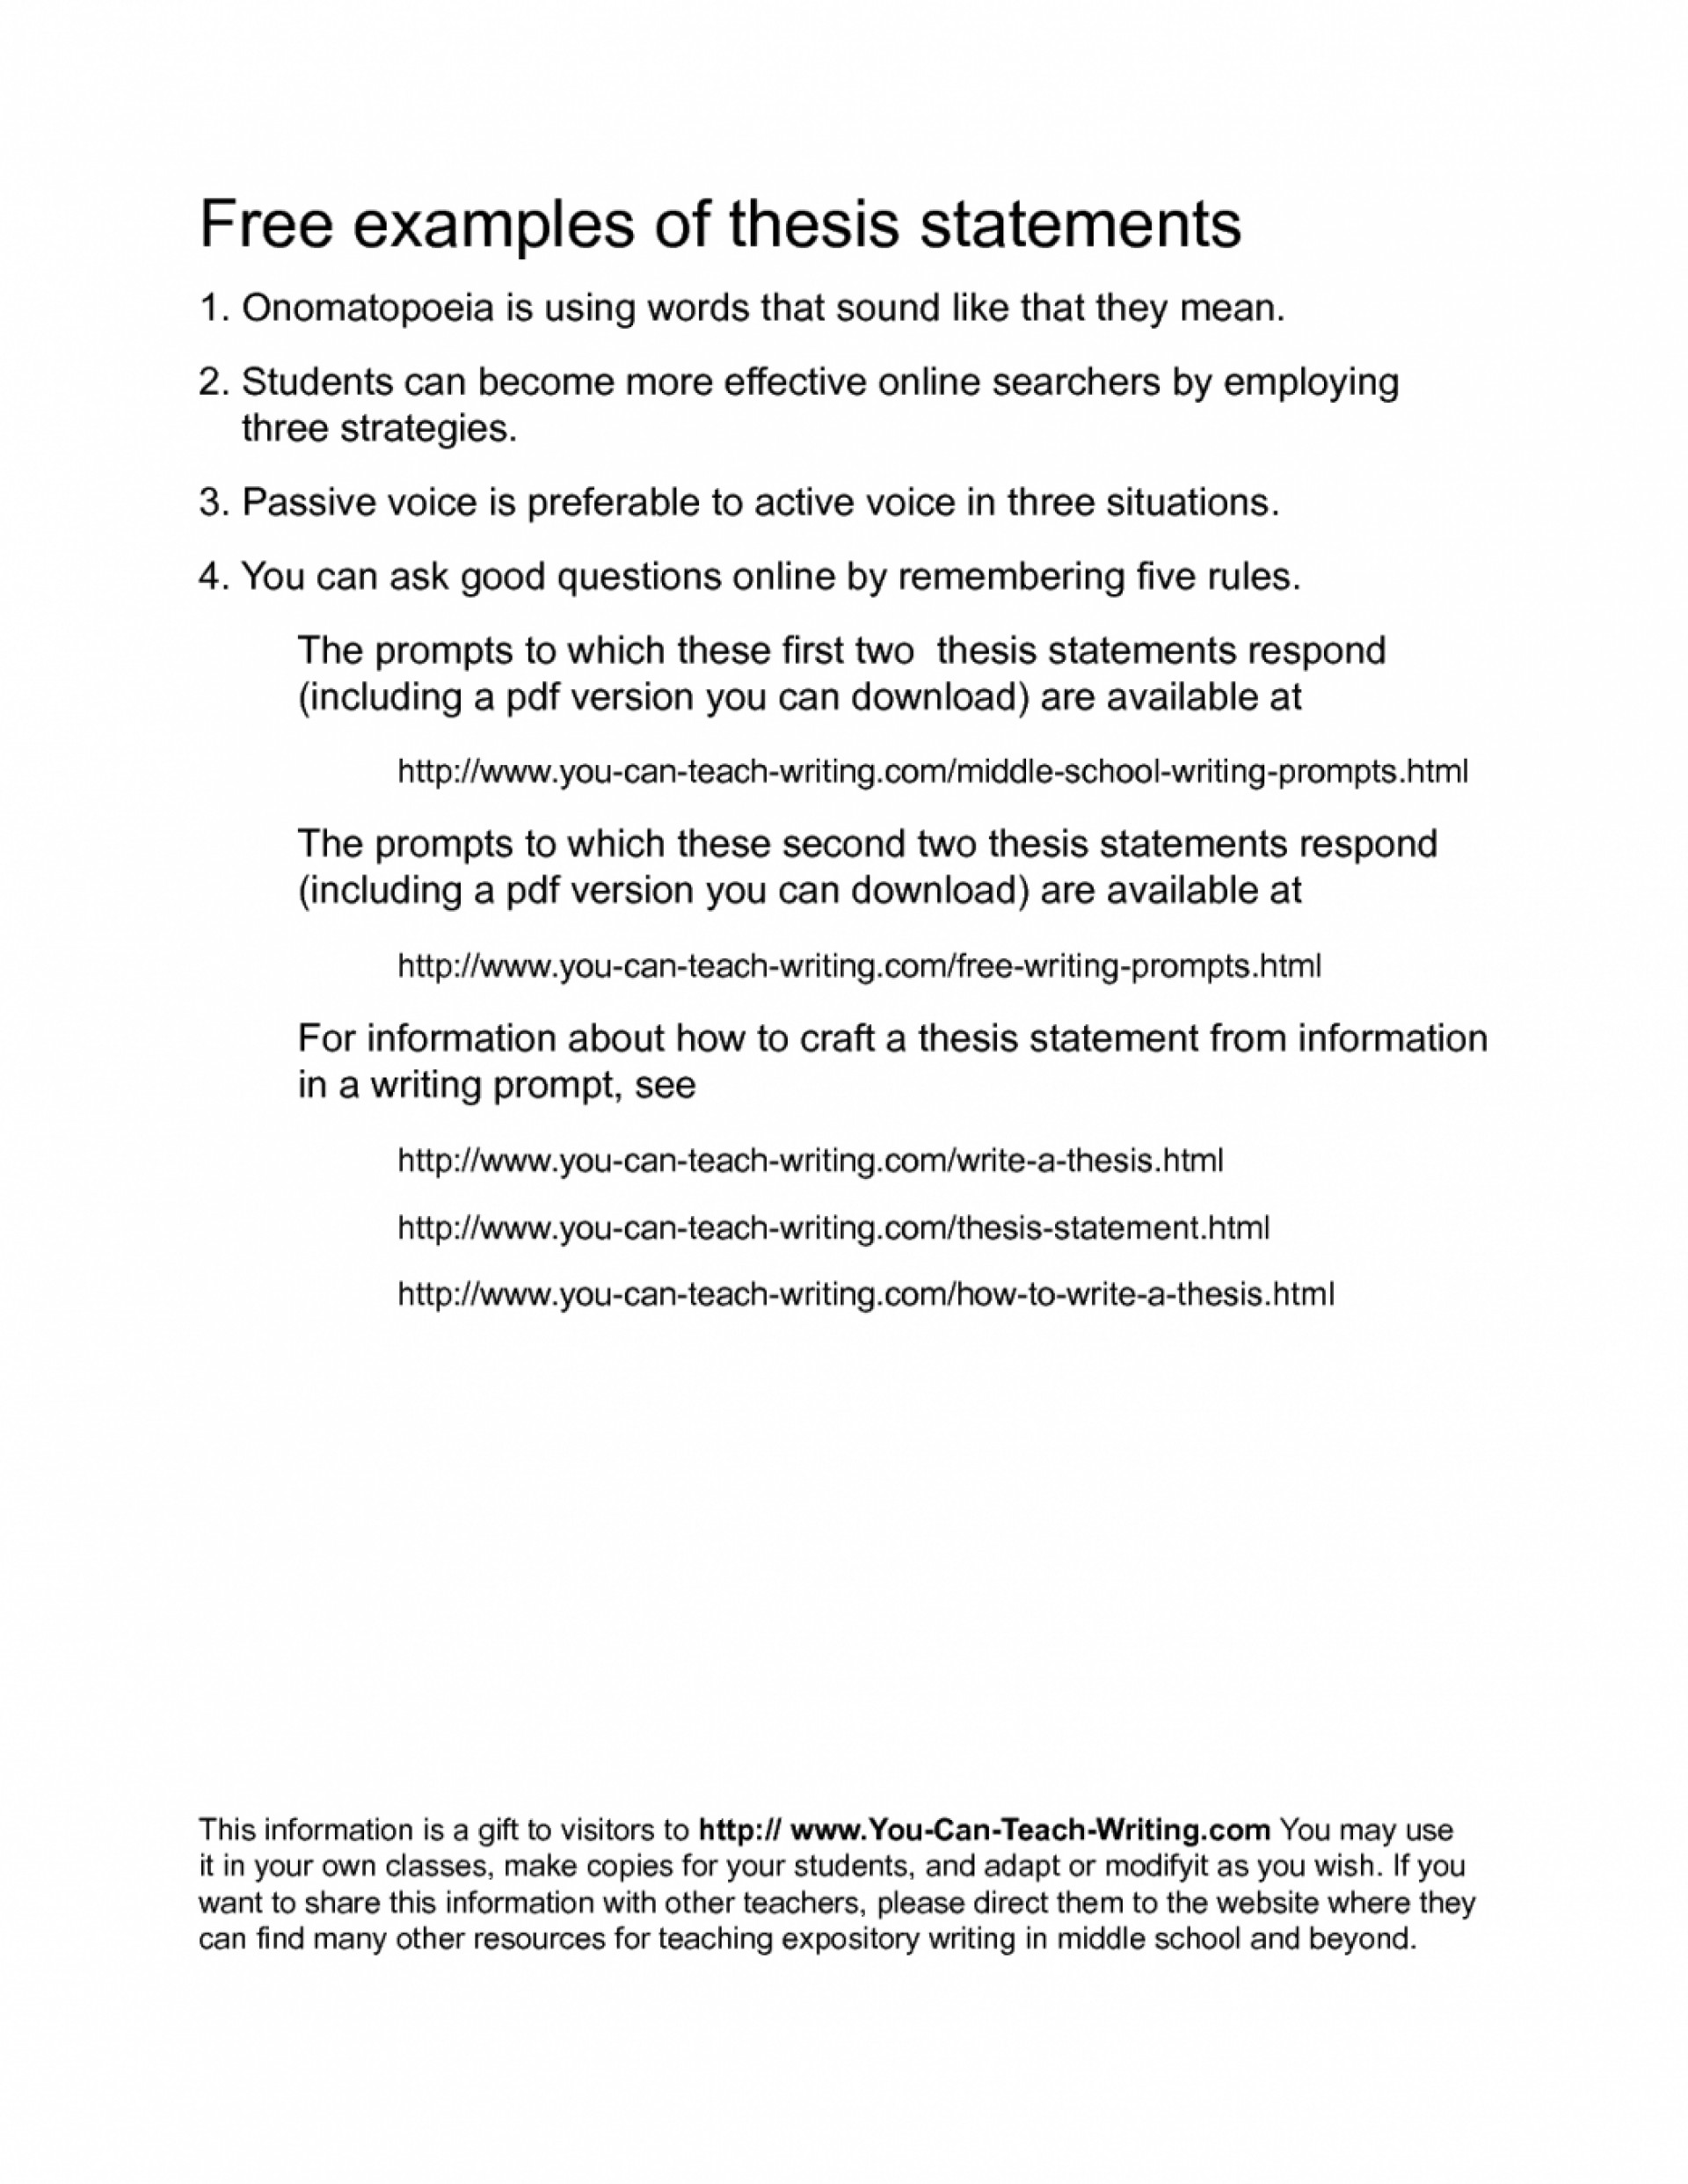 007 Persuasiveay Thesis Good Topics For Middle School About Purpose Of Statement Template Wwe Speech Uniforms Issues Education Rules Uniform Argumentative High 1048x1356 Exceptional Persuasive Essay Examples Worksheet 1920